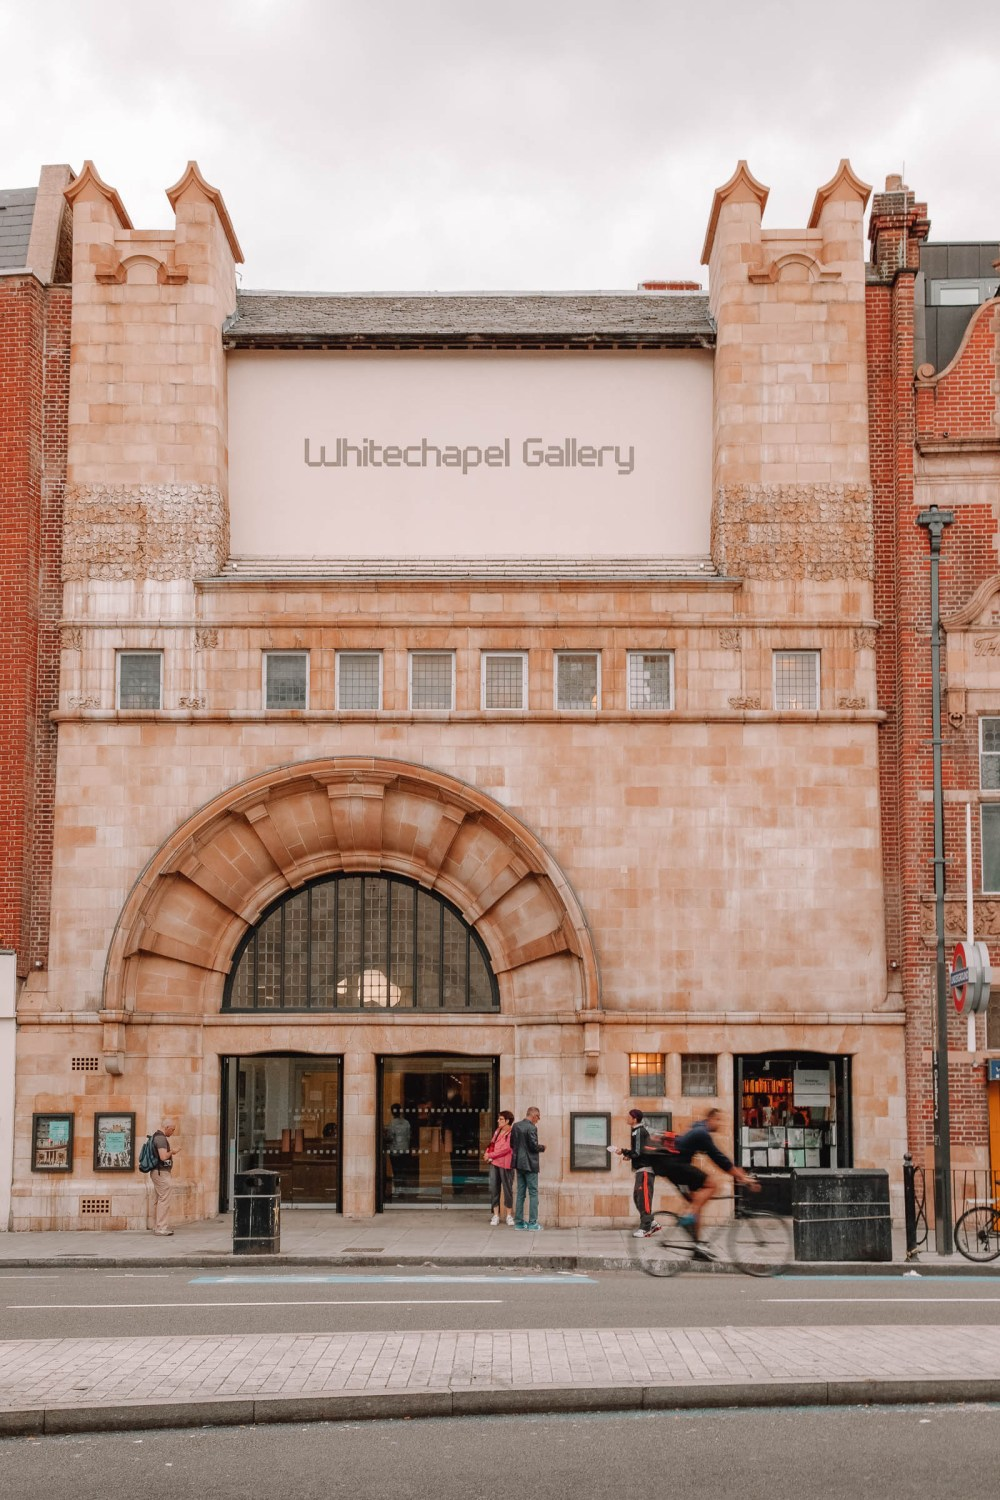 10 Best Things To Do In Whitechapel - London (11)